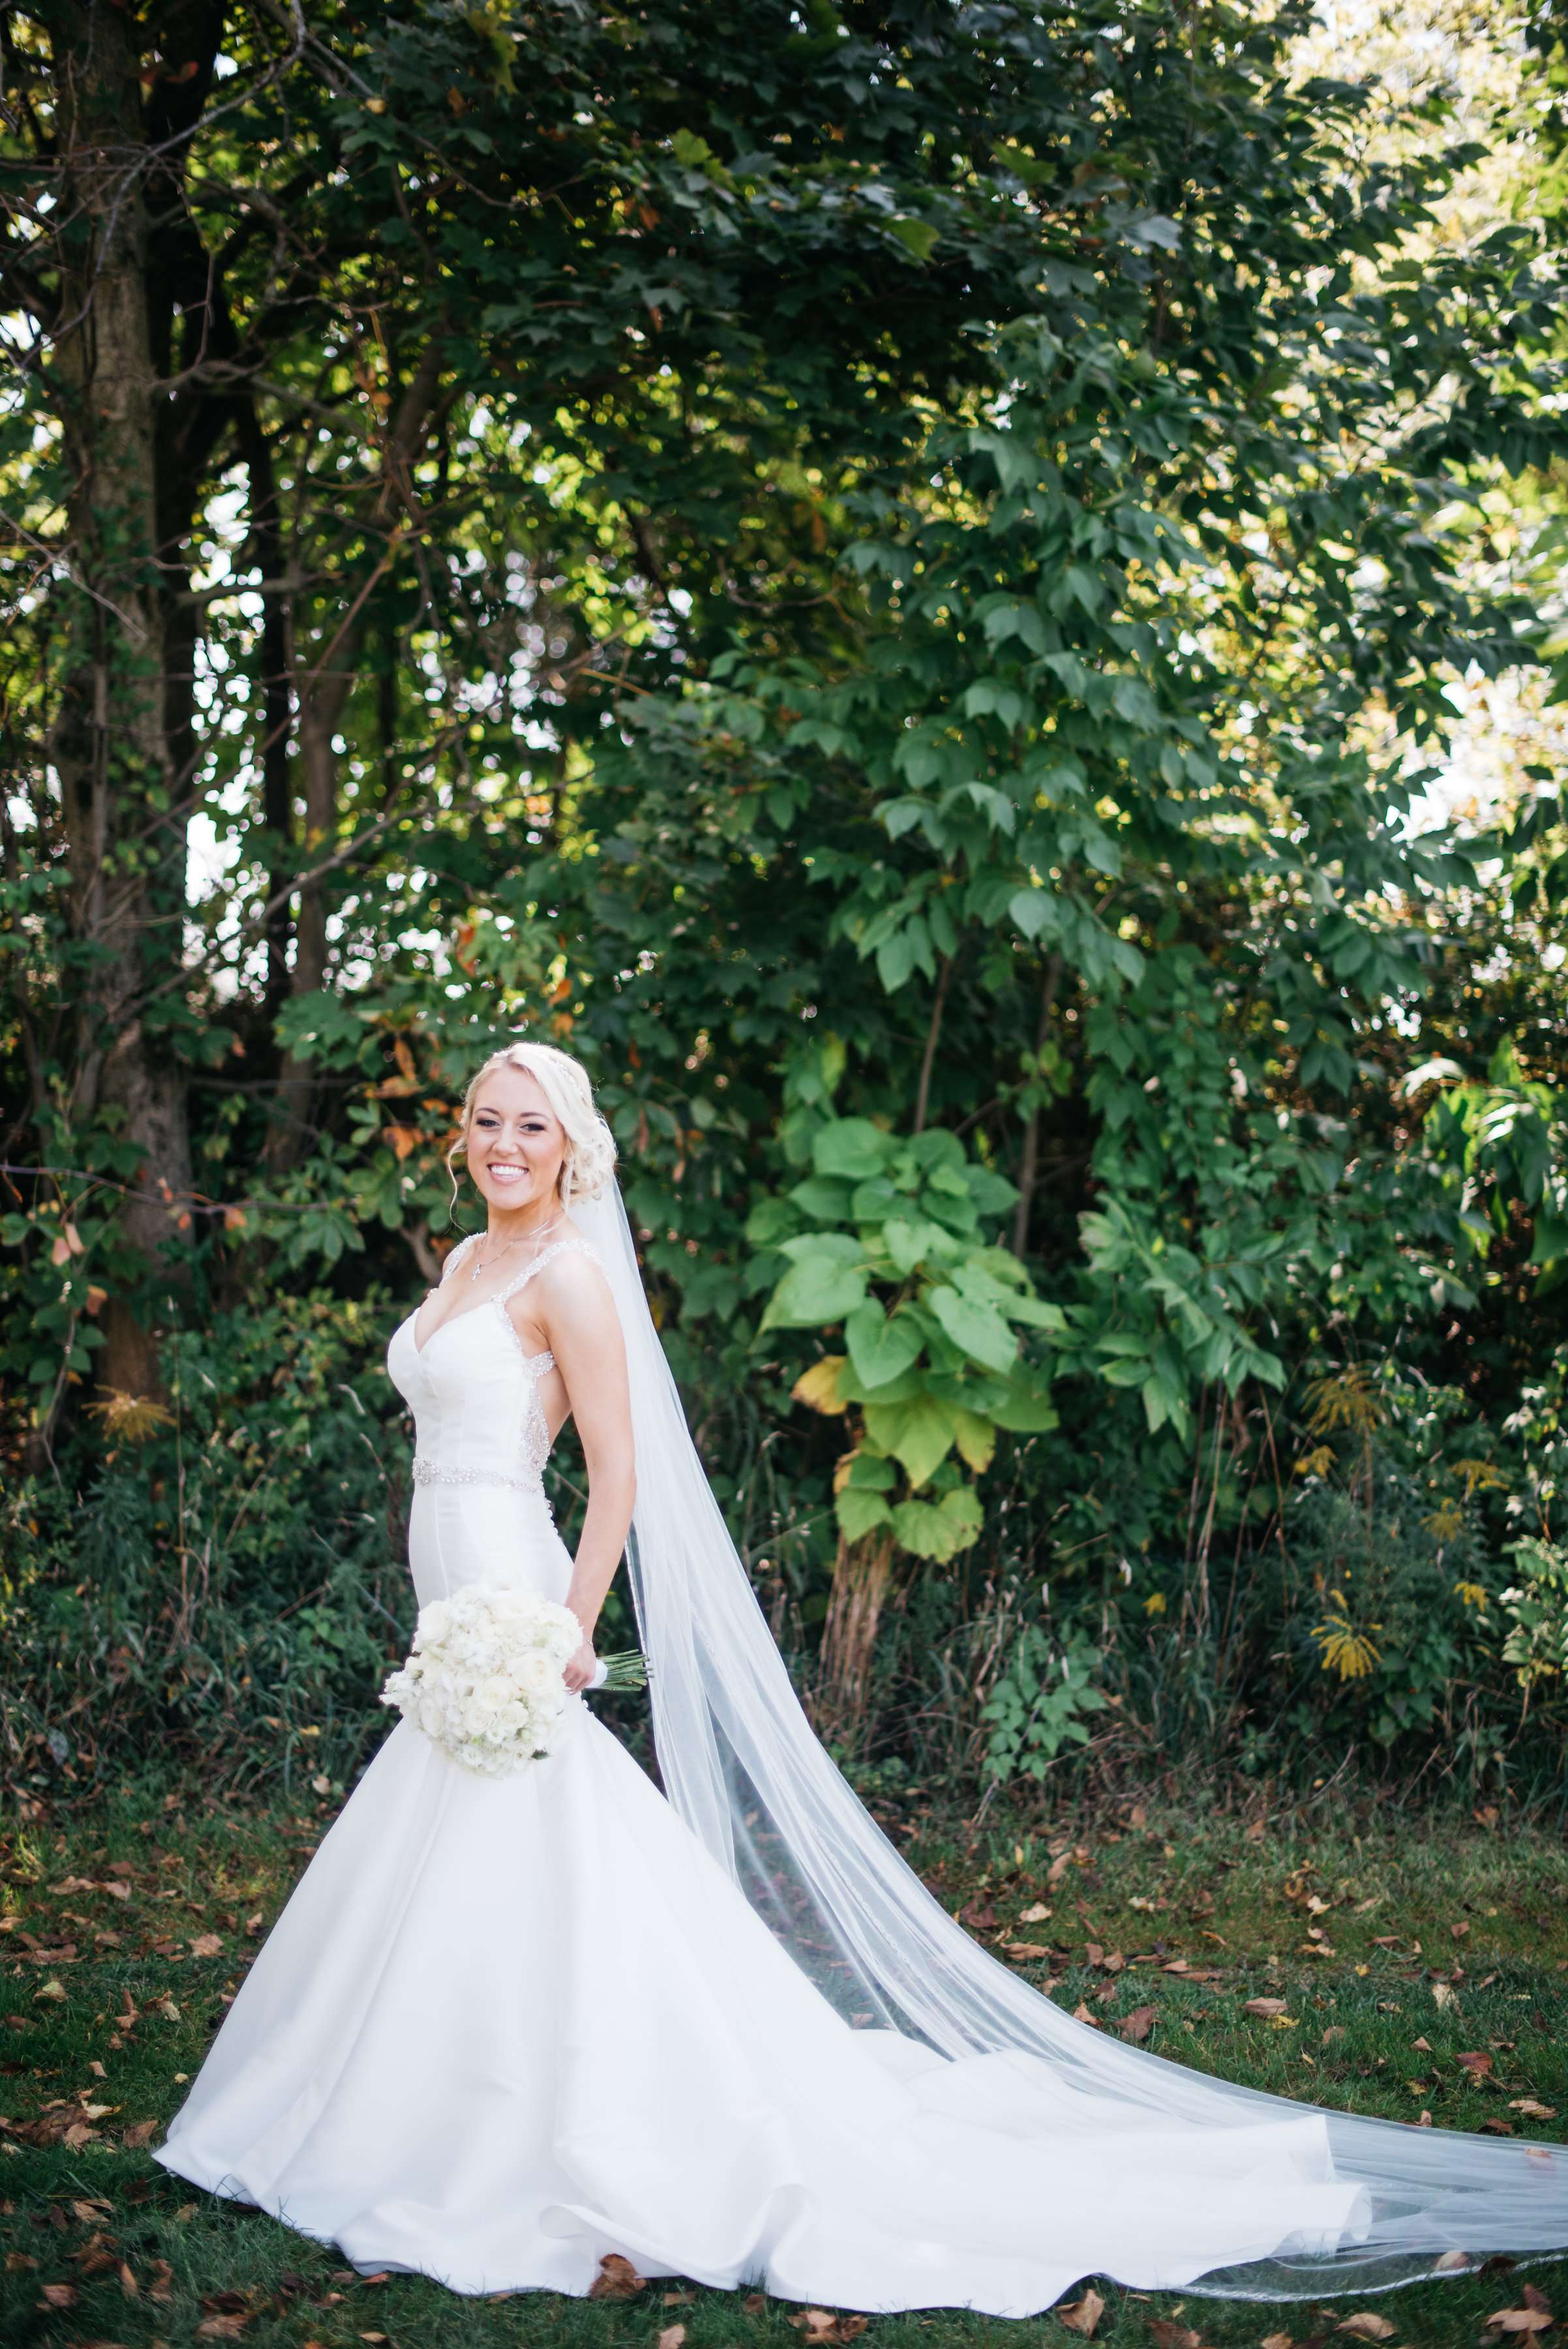 {Photos by: Erika Aileen Photography}